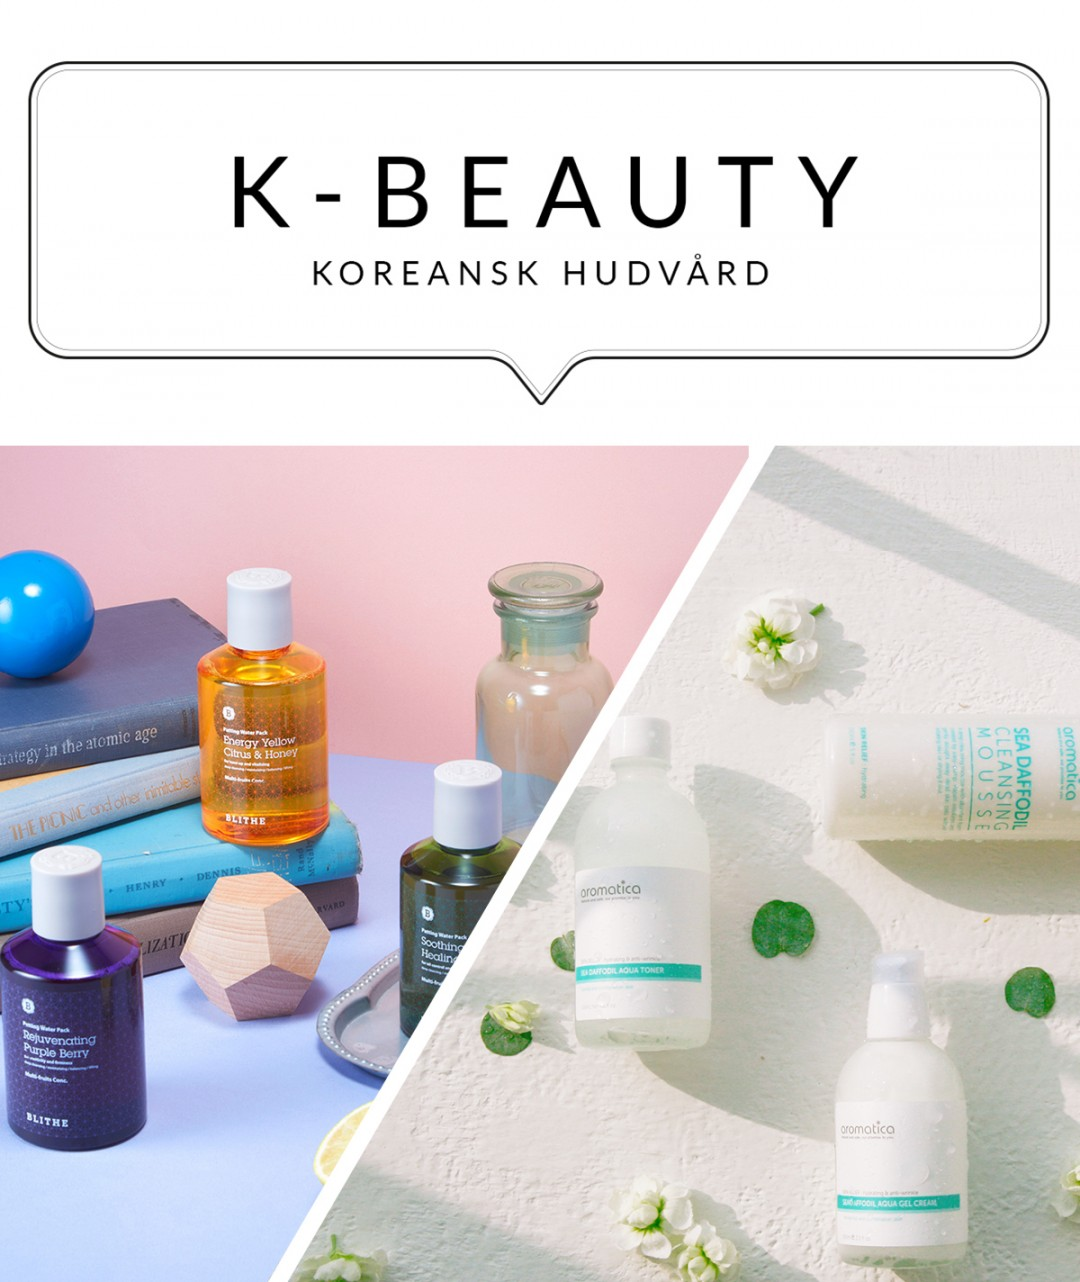 K Beauty på Hudoteket.se